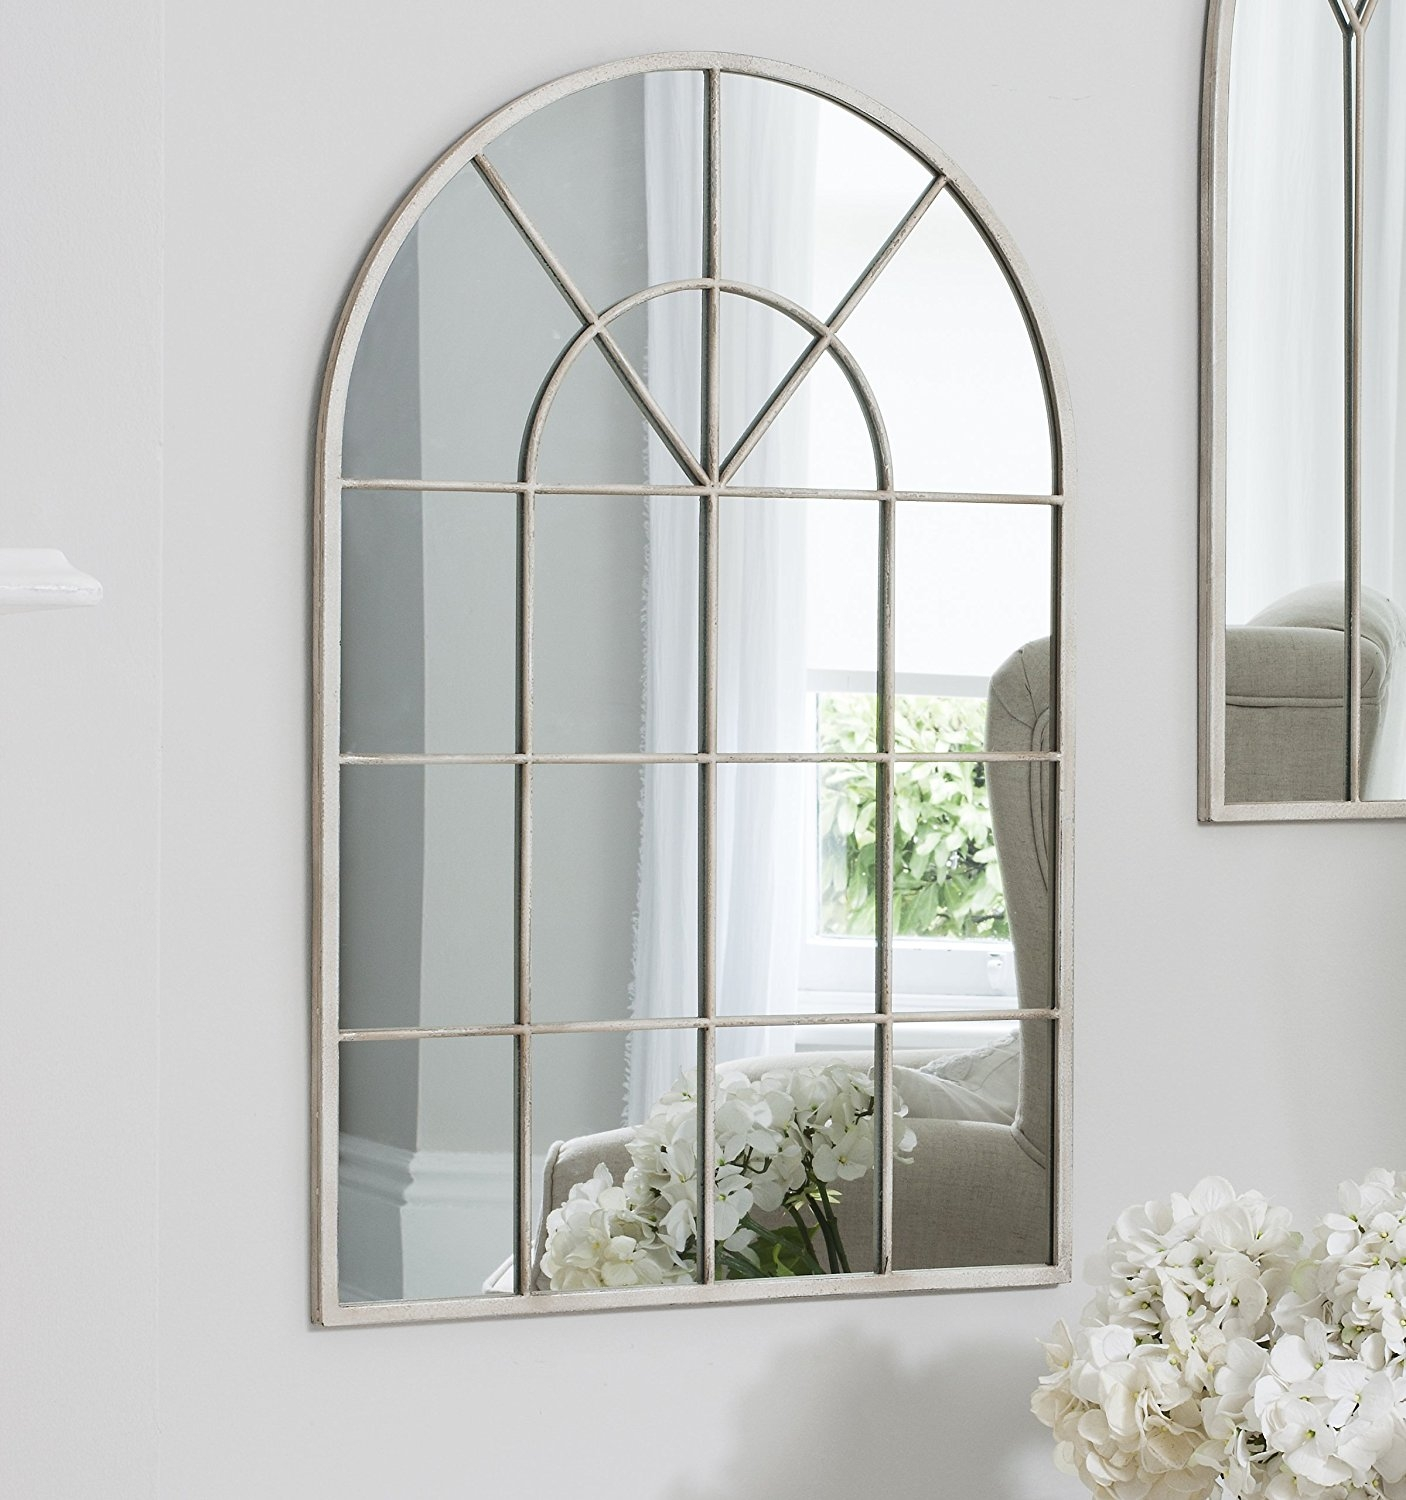 Arabella Vintage White Shab Chic Arch Window Framed Wall For White Arched Window Mirror (Image 1 of 15)